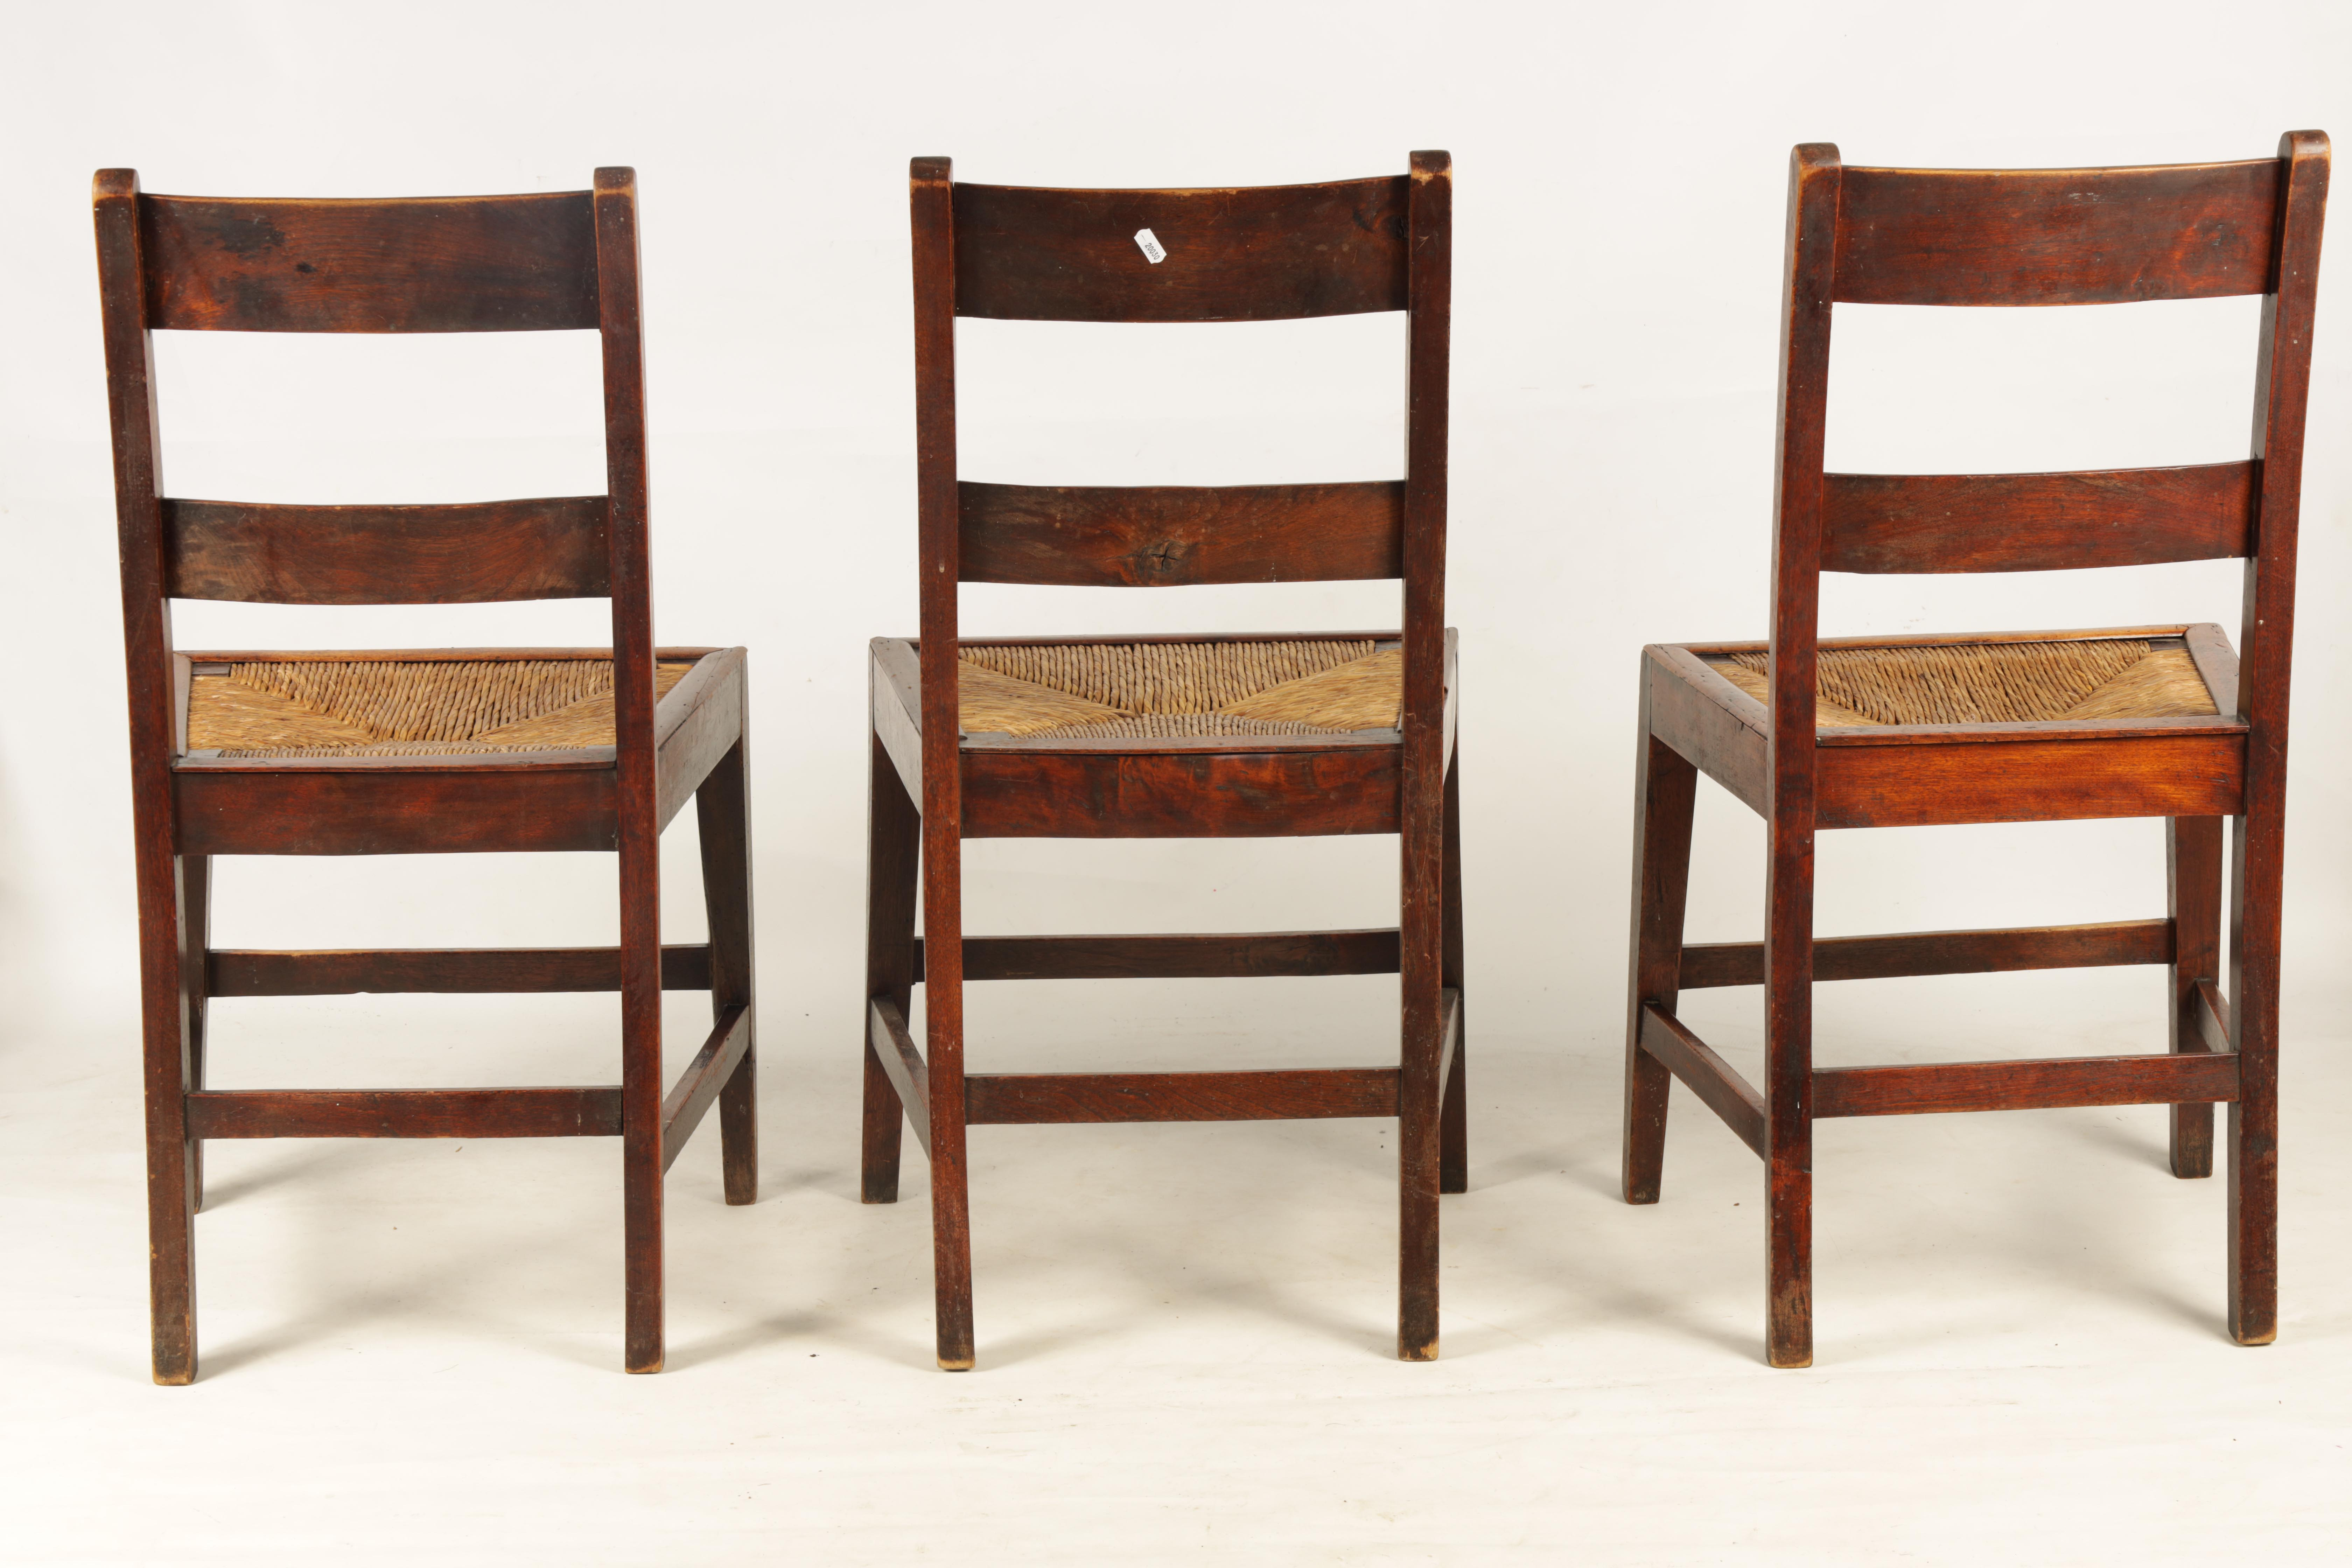 A SET OF SIX 19TH CENTURY COUNTRY FRUITWOOD DINING CHAIRS with rush seats and bar backs; standing on - Image 5 of 9